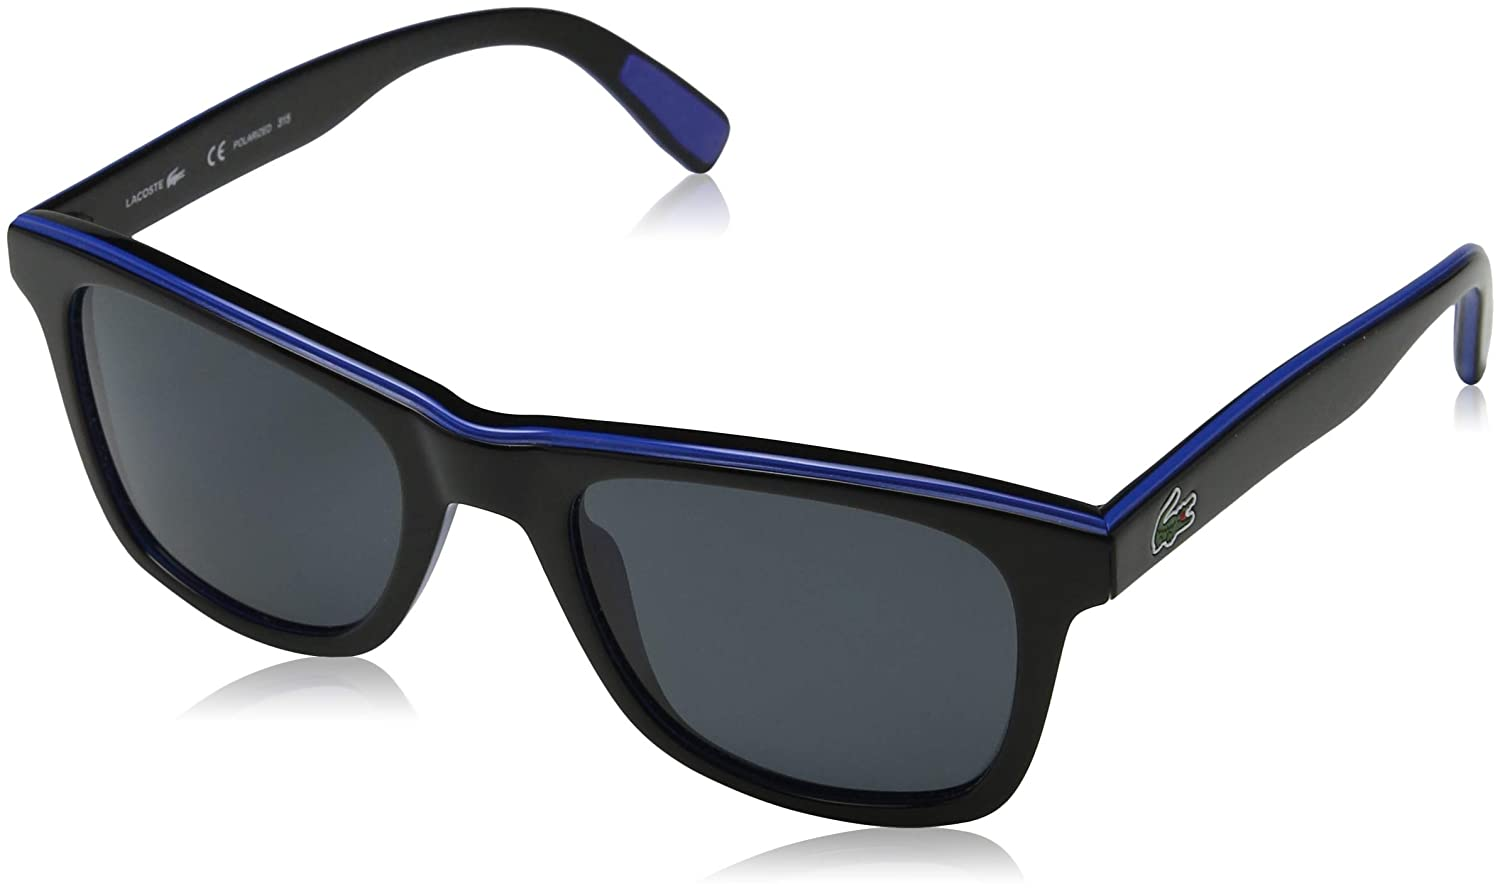 fb4f04d35b Lacoste Polarized Sunglasses - L781SP (Black Blue Black)  Amazon.ca  Sports    Outdoors